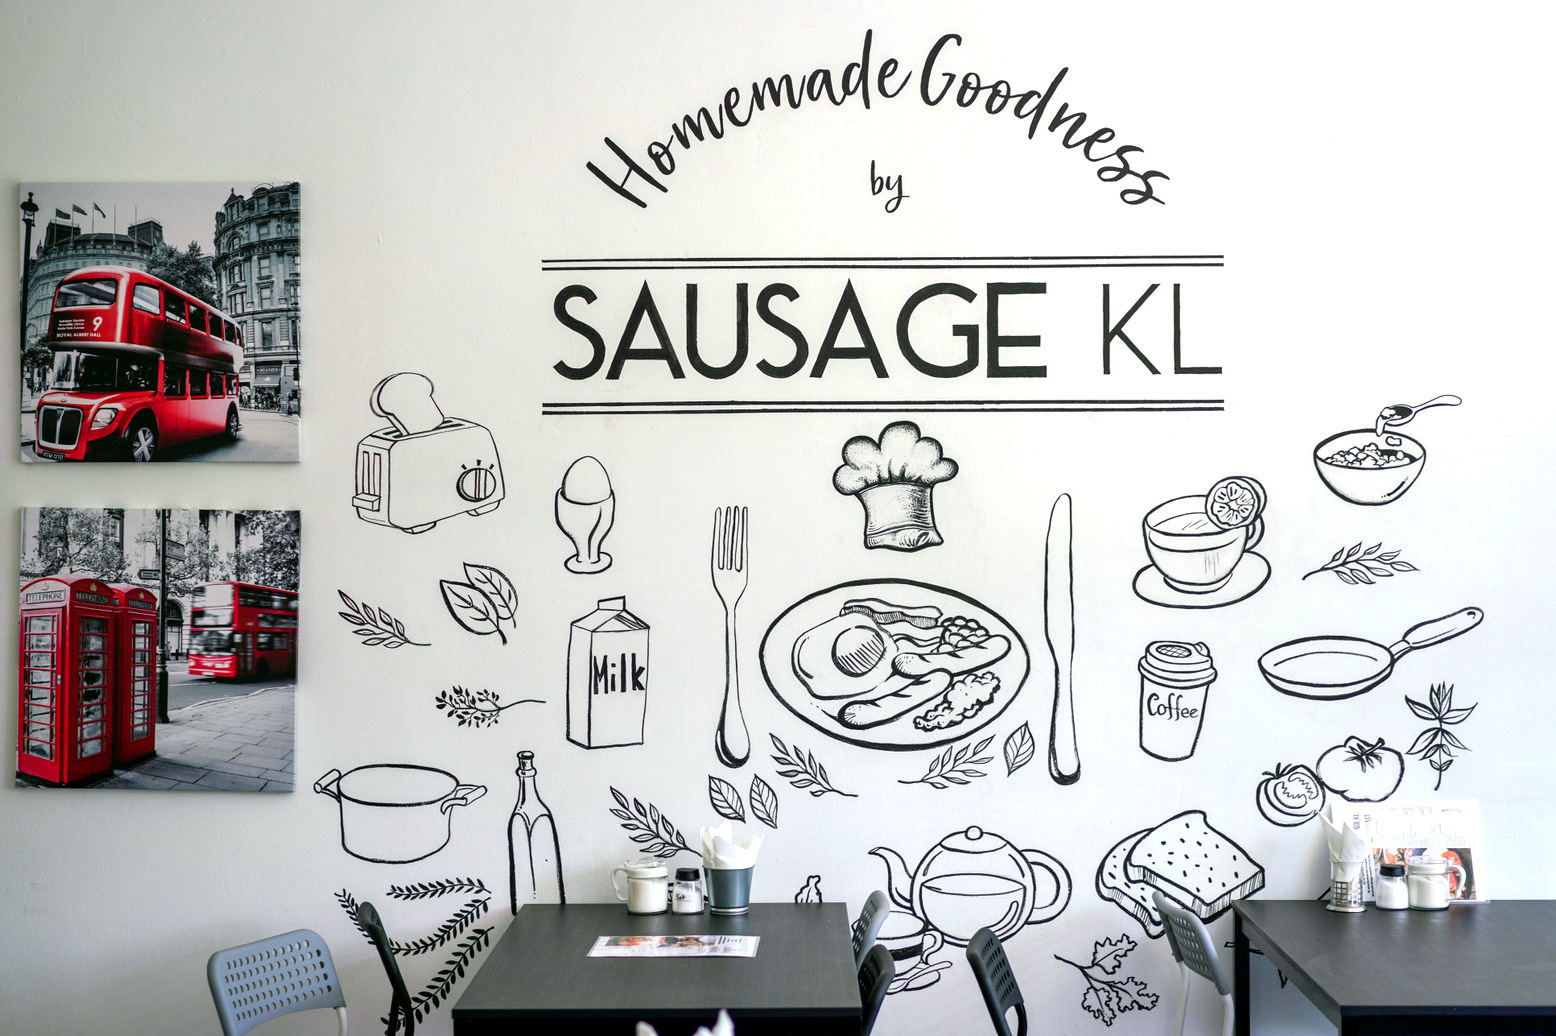 sausage kl, holiday place, ampang road